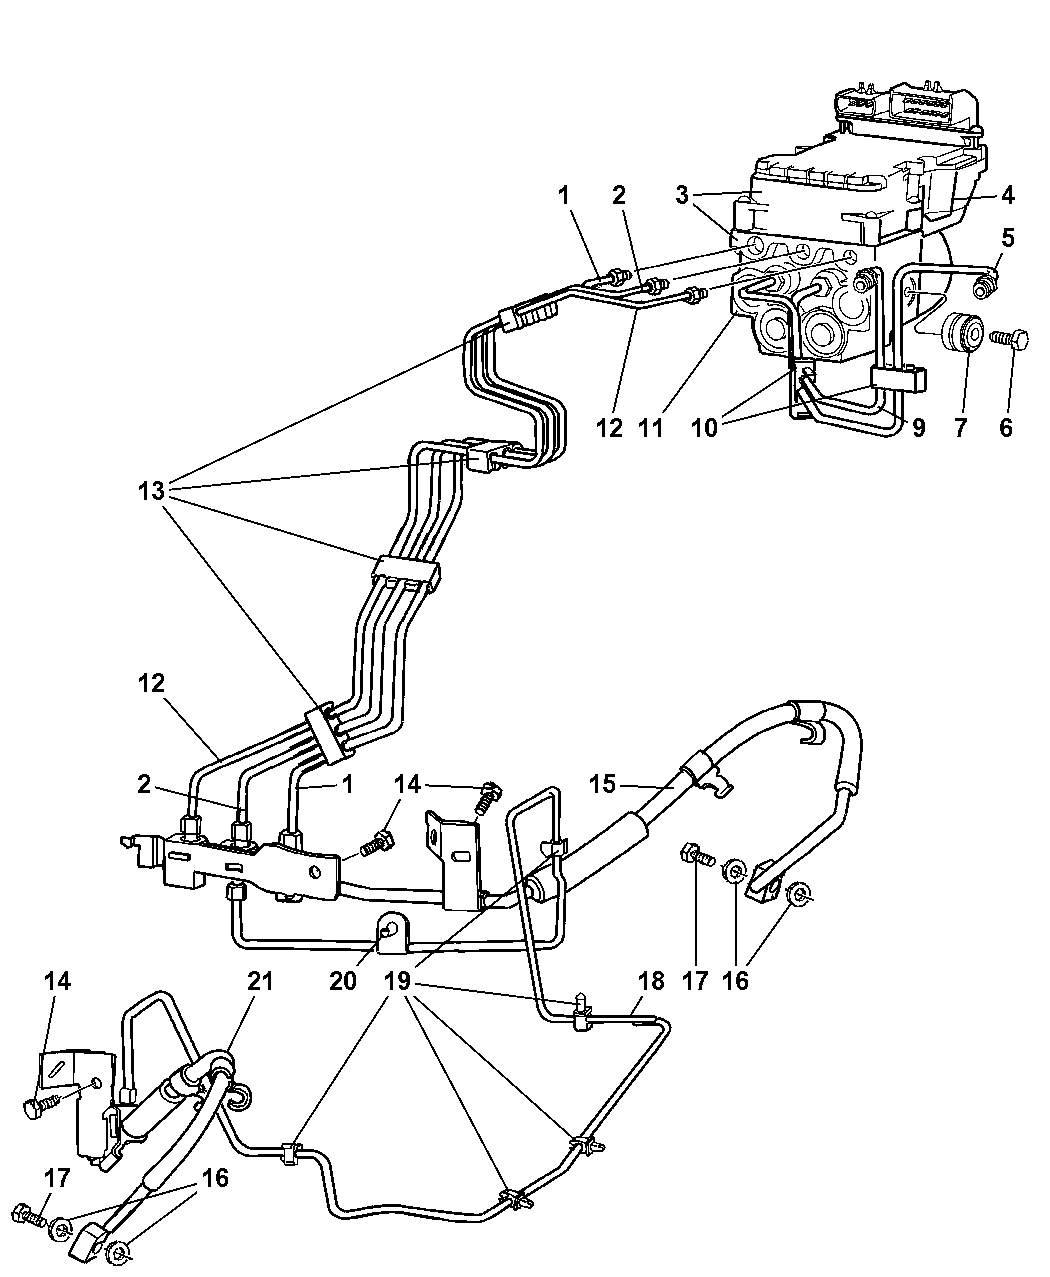 2002 Dodge Ram 1500 Front Axle Diagram